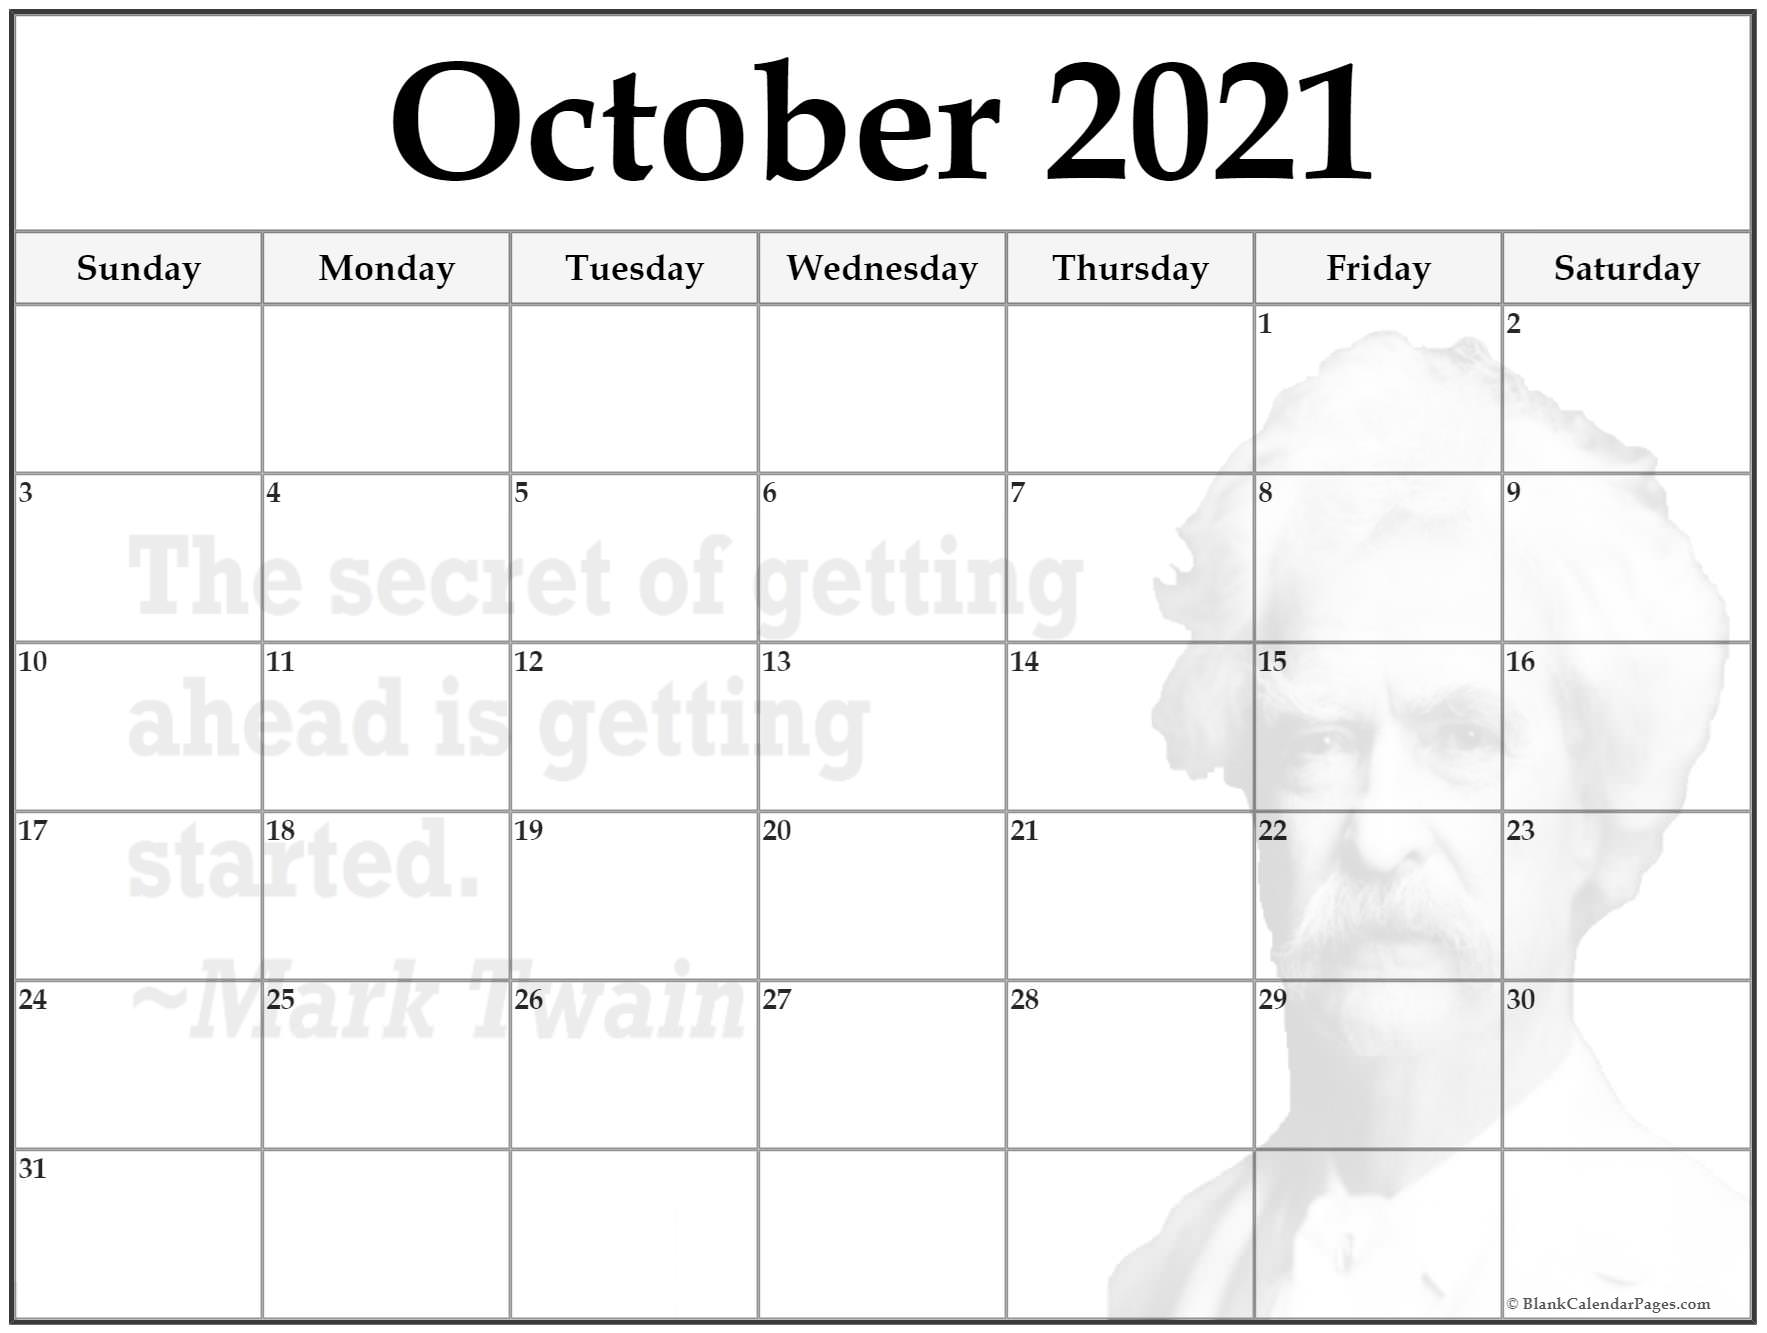 October 2021 printable quote calendar template. The secret of getting ahead is getting started. ~Mark Twain